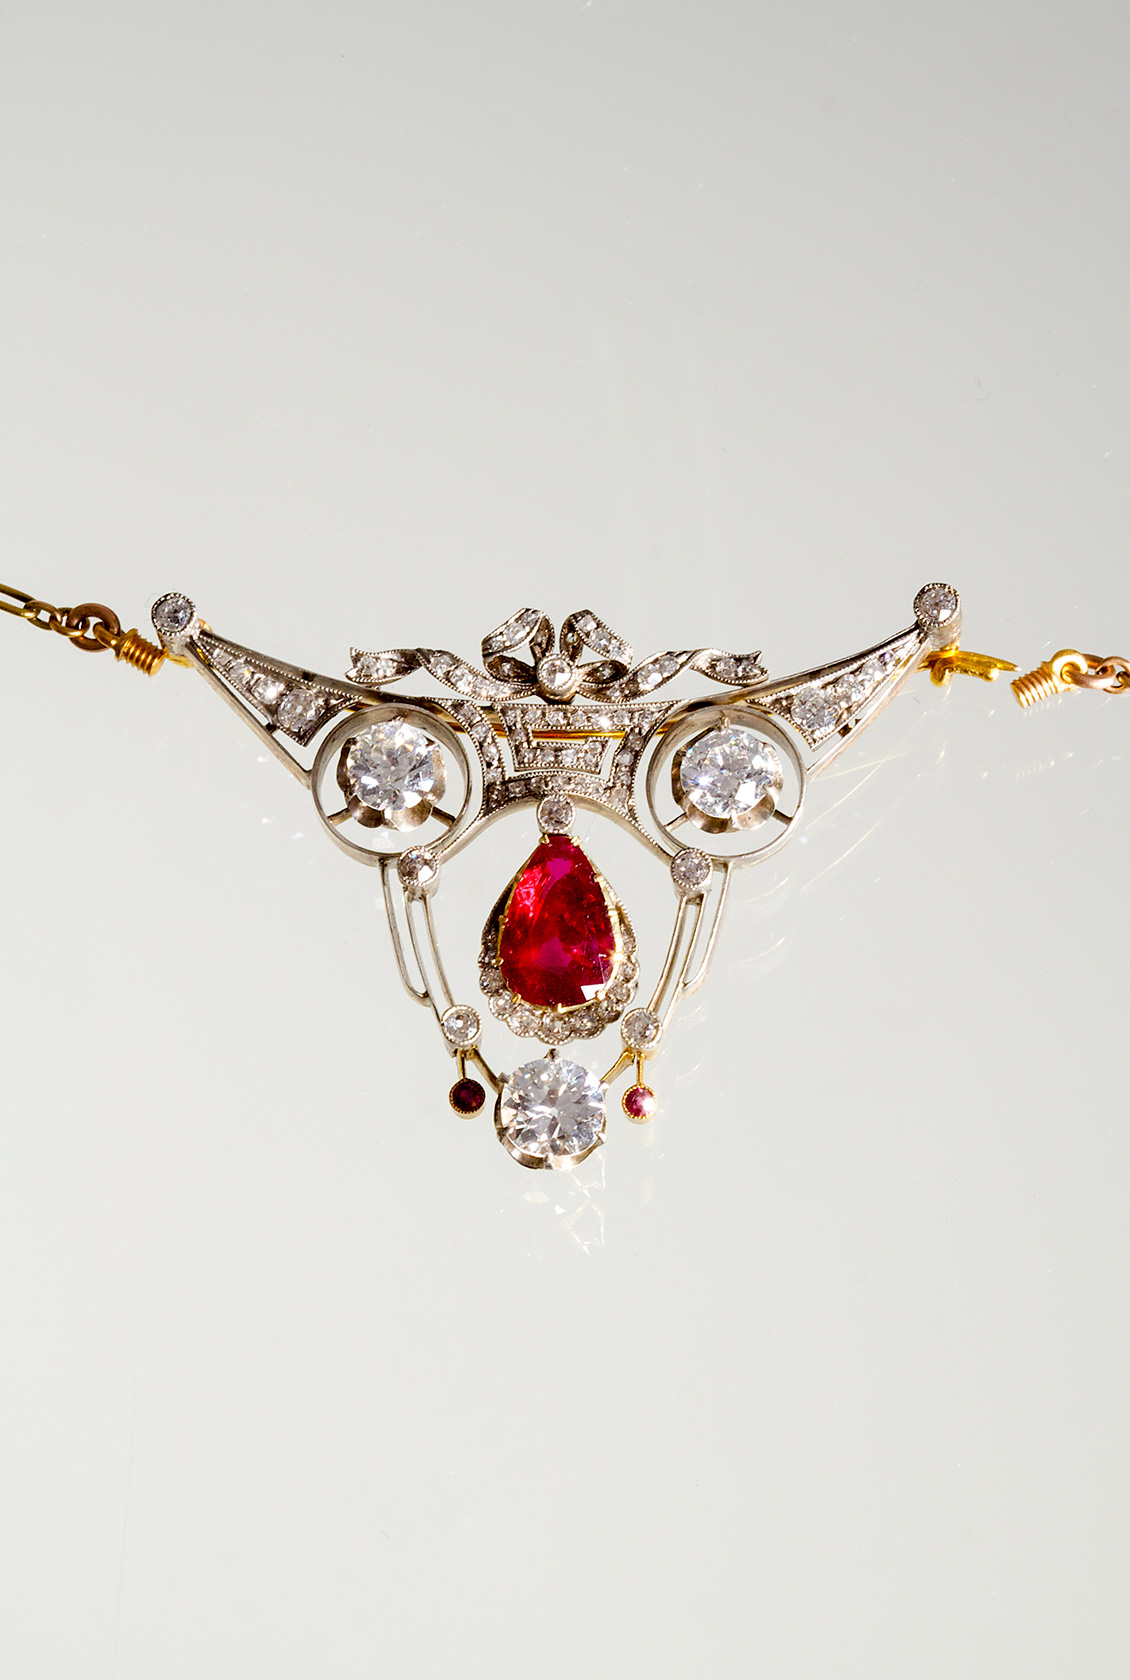 The Russian Imperial Jewelers That Time